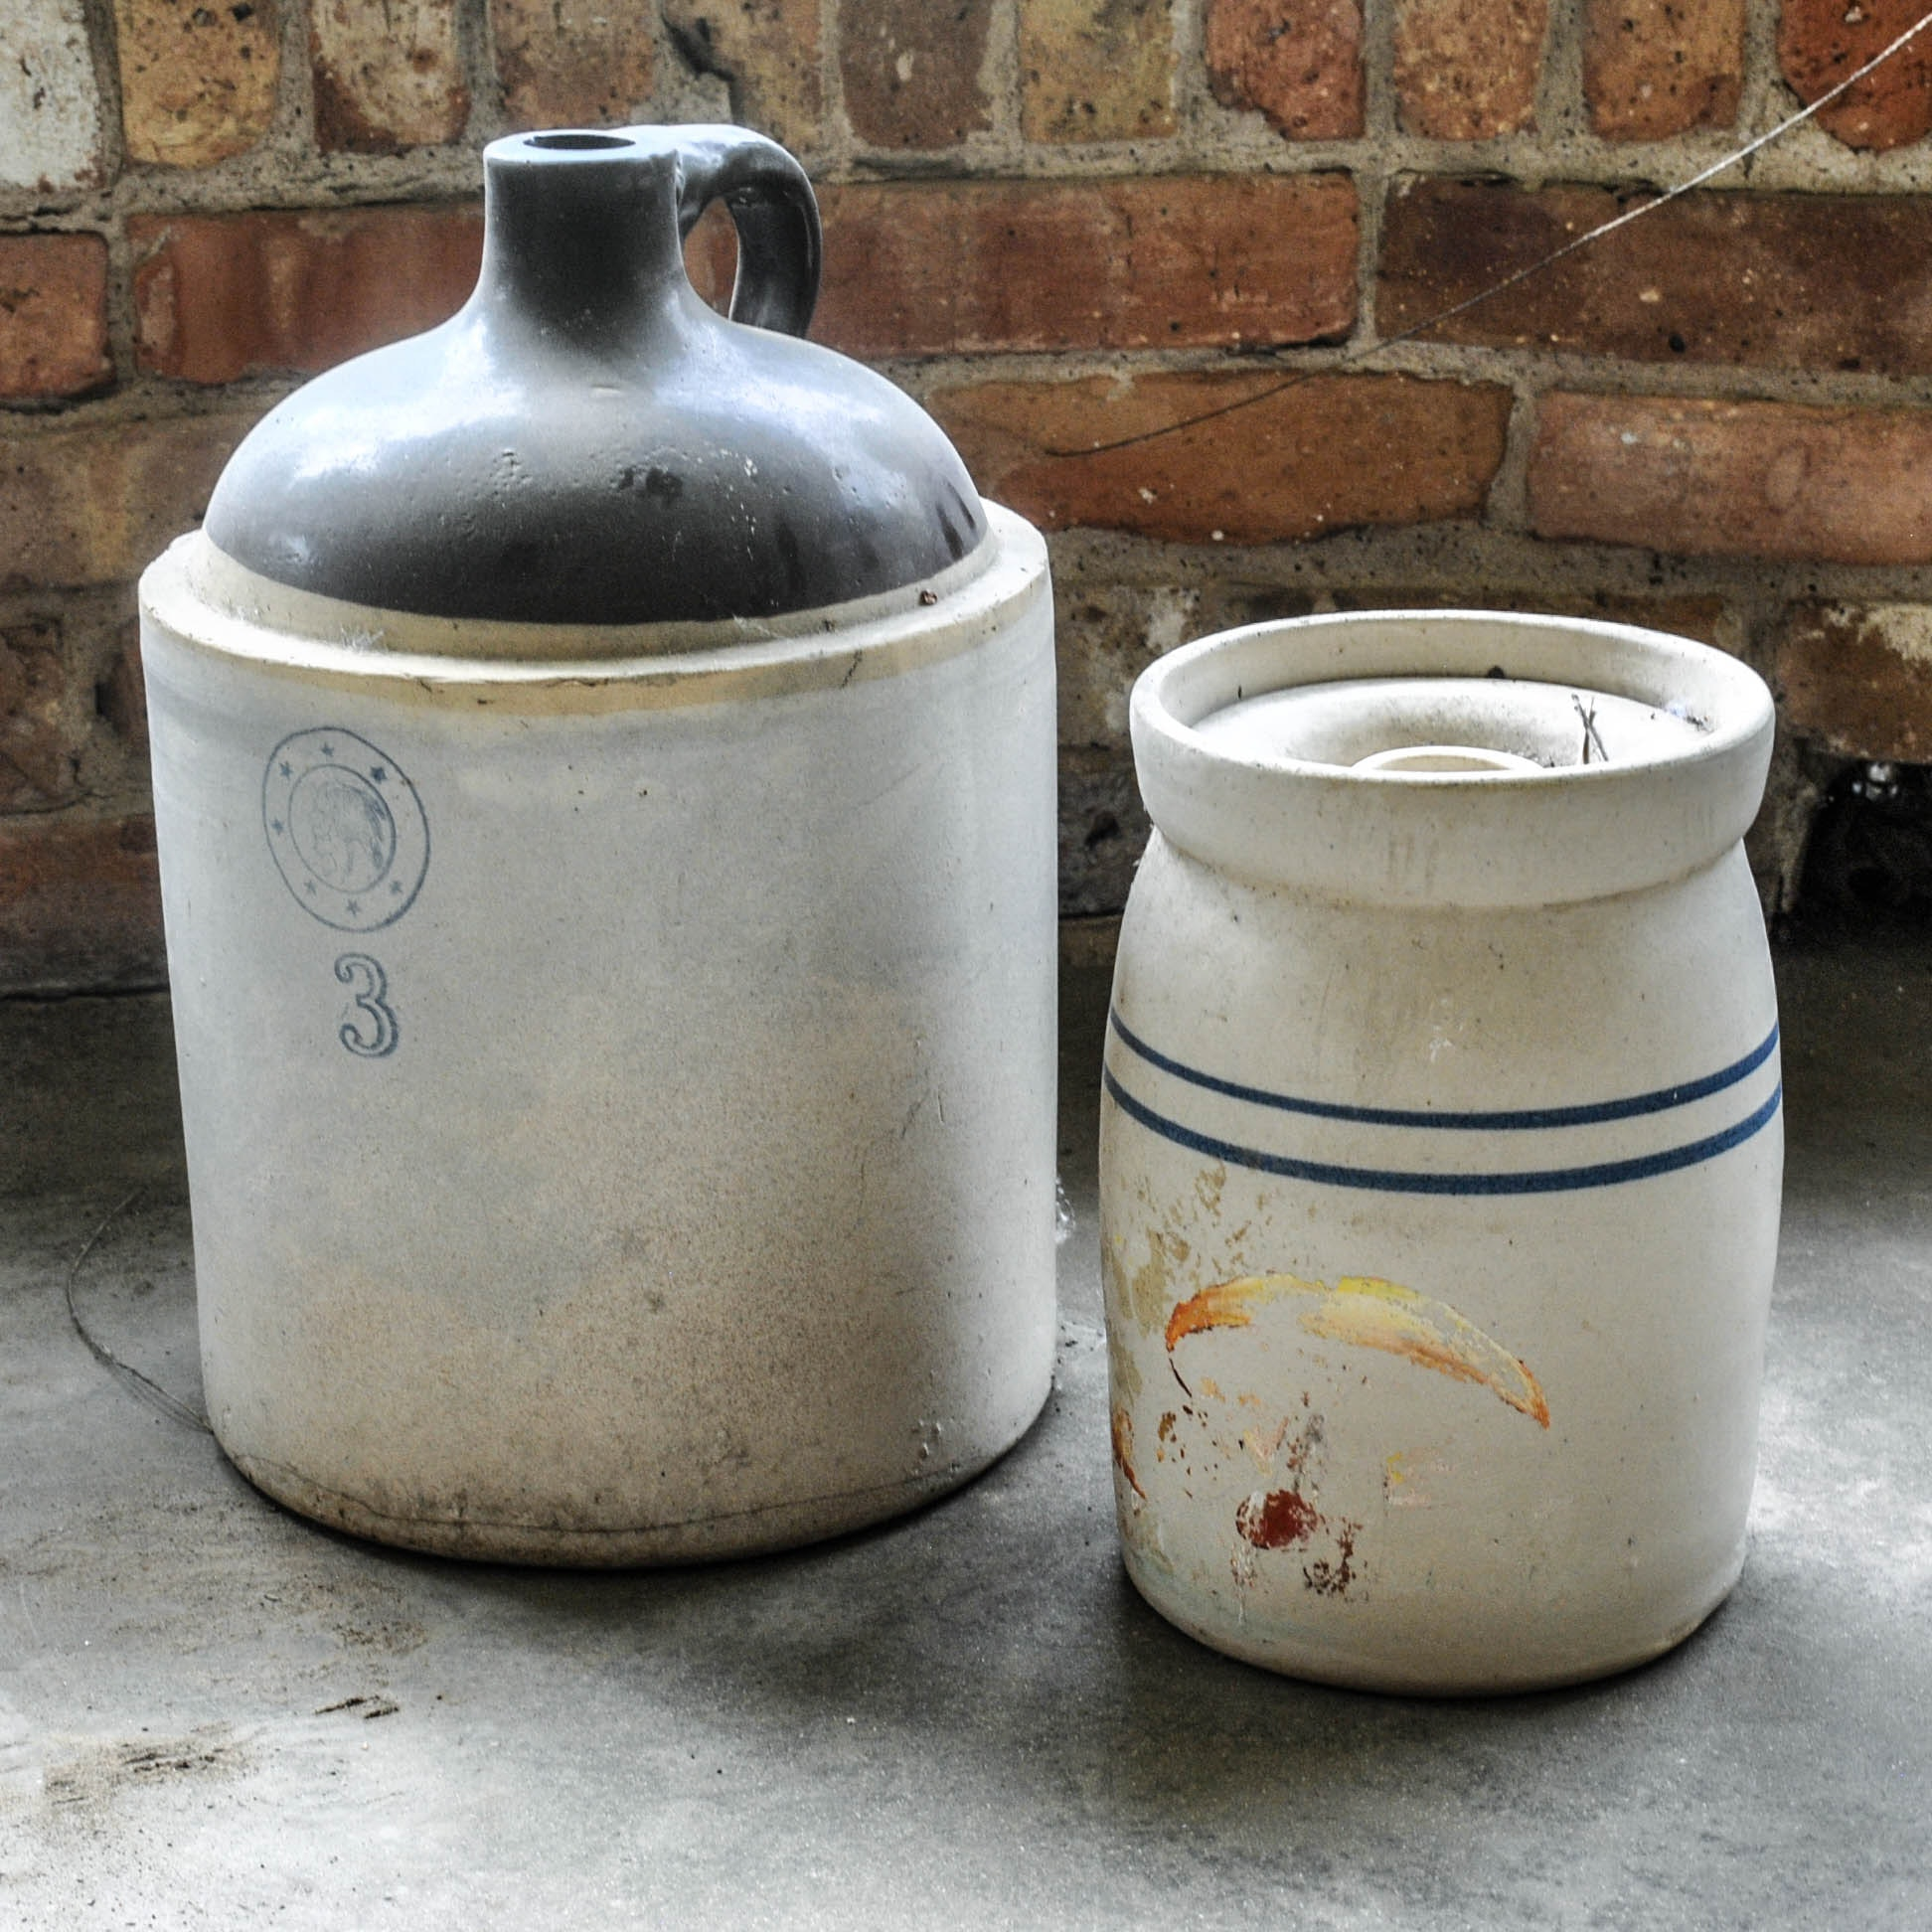 Vintage Louisville Pottery Stoneware Jug and Butter Churn Crock